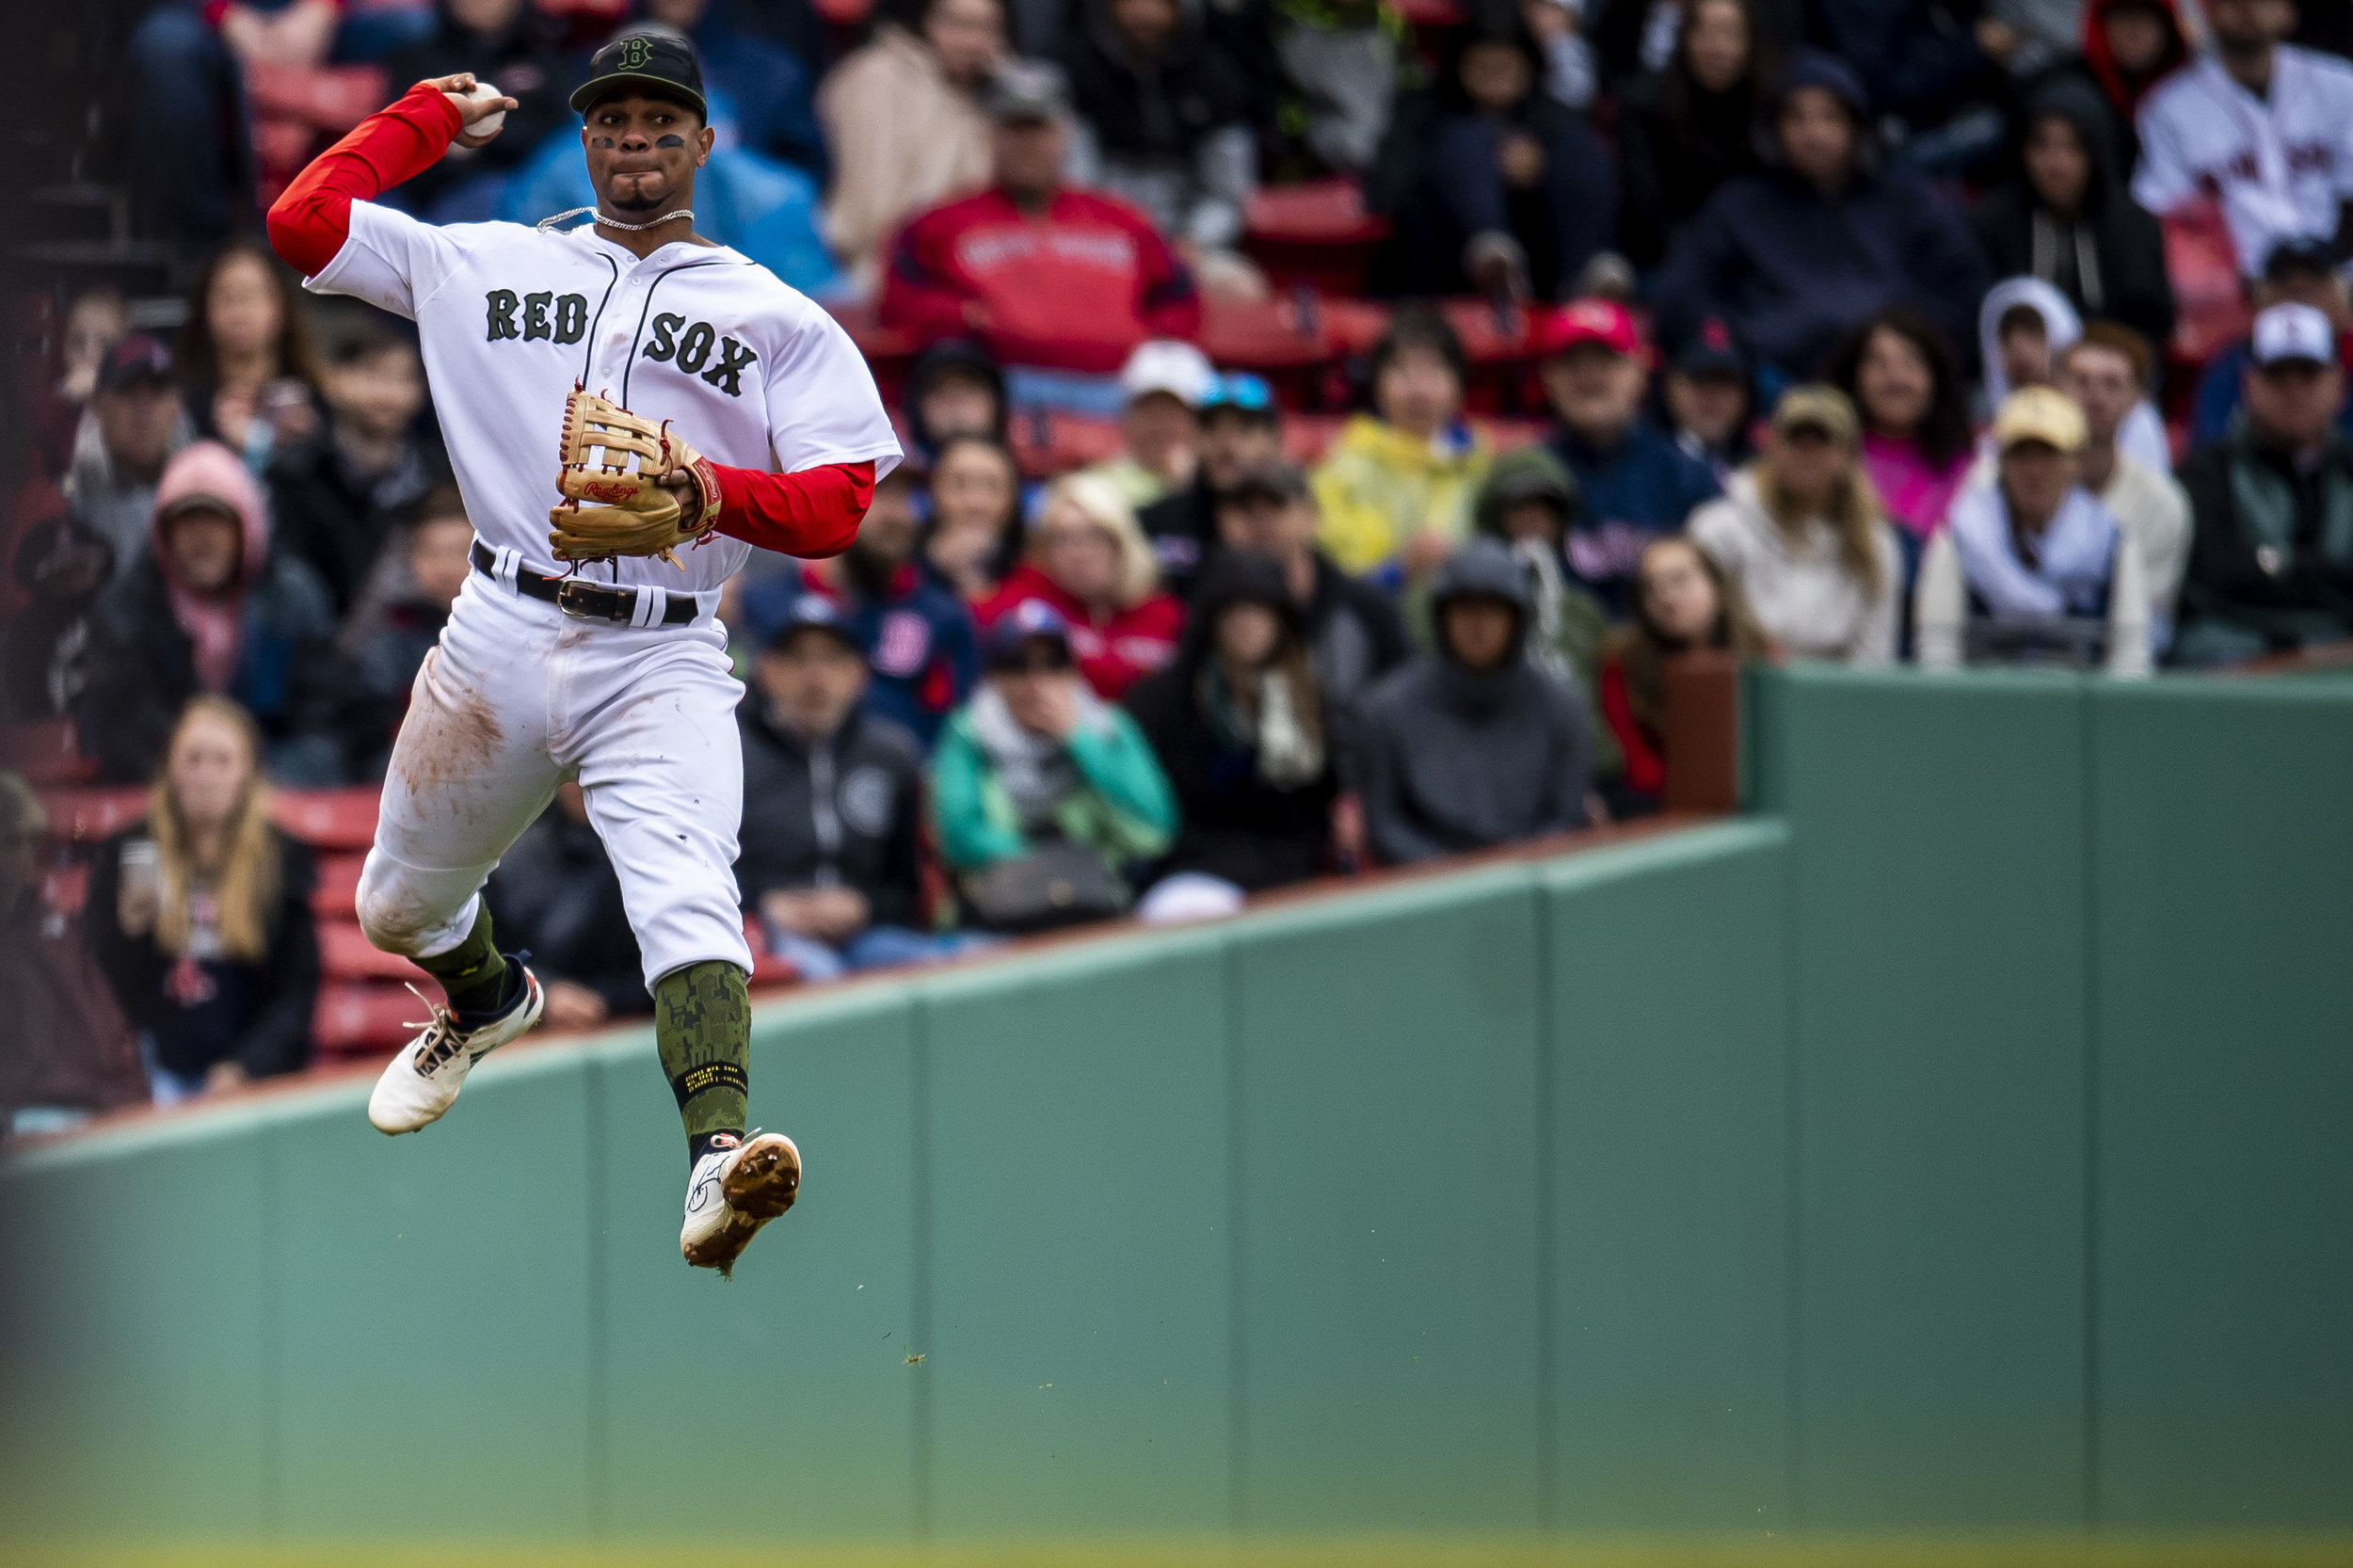 May 27, 2018, Boston, MA: Boston Red Sox shortstop Xander Bogaerts jumps to make a throw as the Boston Red Sox face the Atlanta Braves at Fenway Park in Boston, Massachusetts on Sunday, May 27, 2018. (Photo by Matthew Thomas/Boston Red Sox)